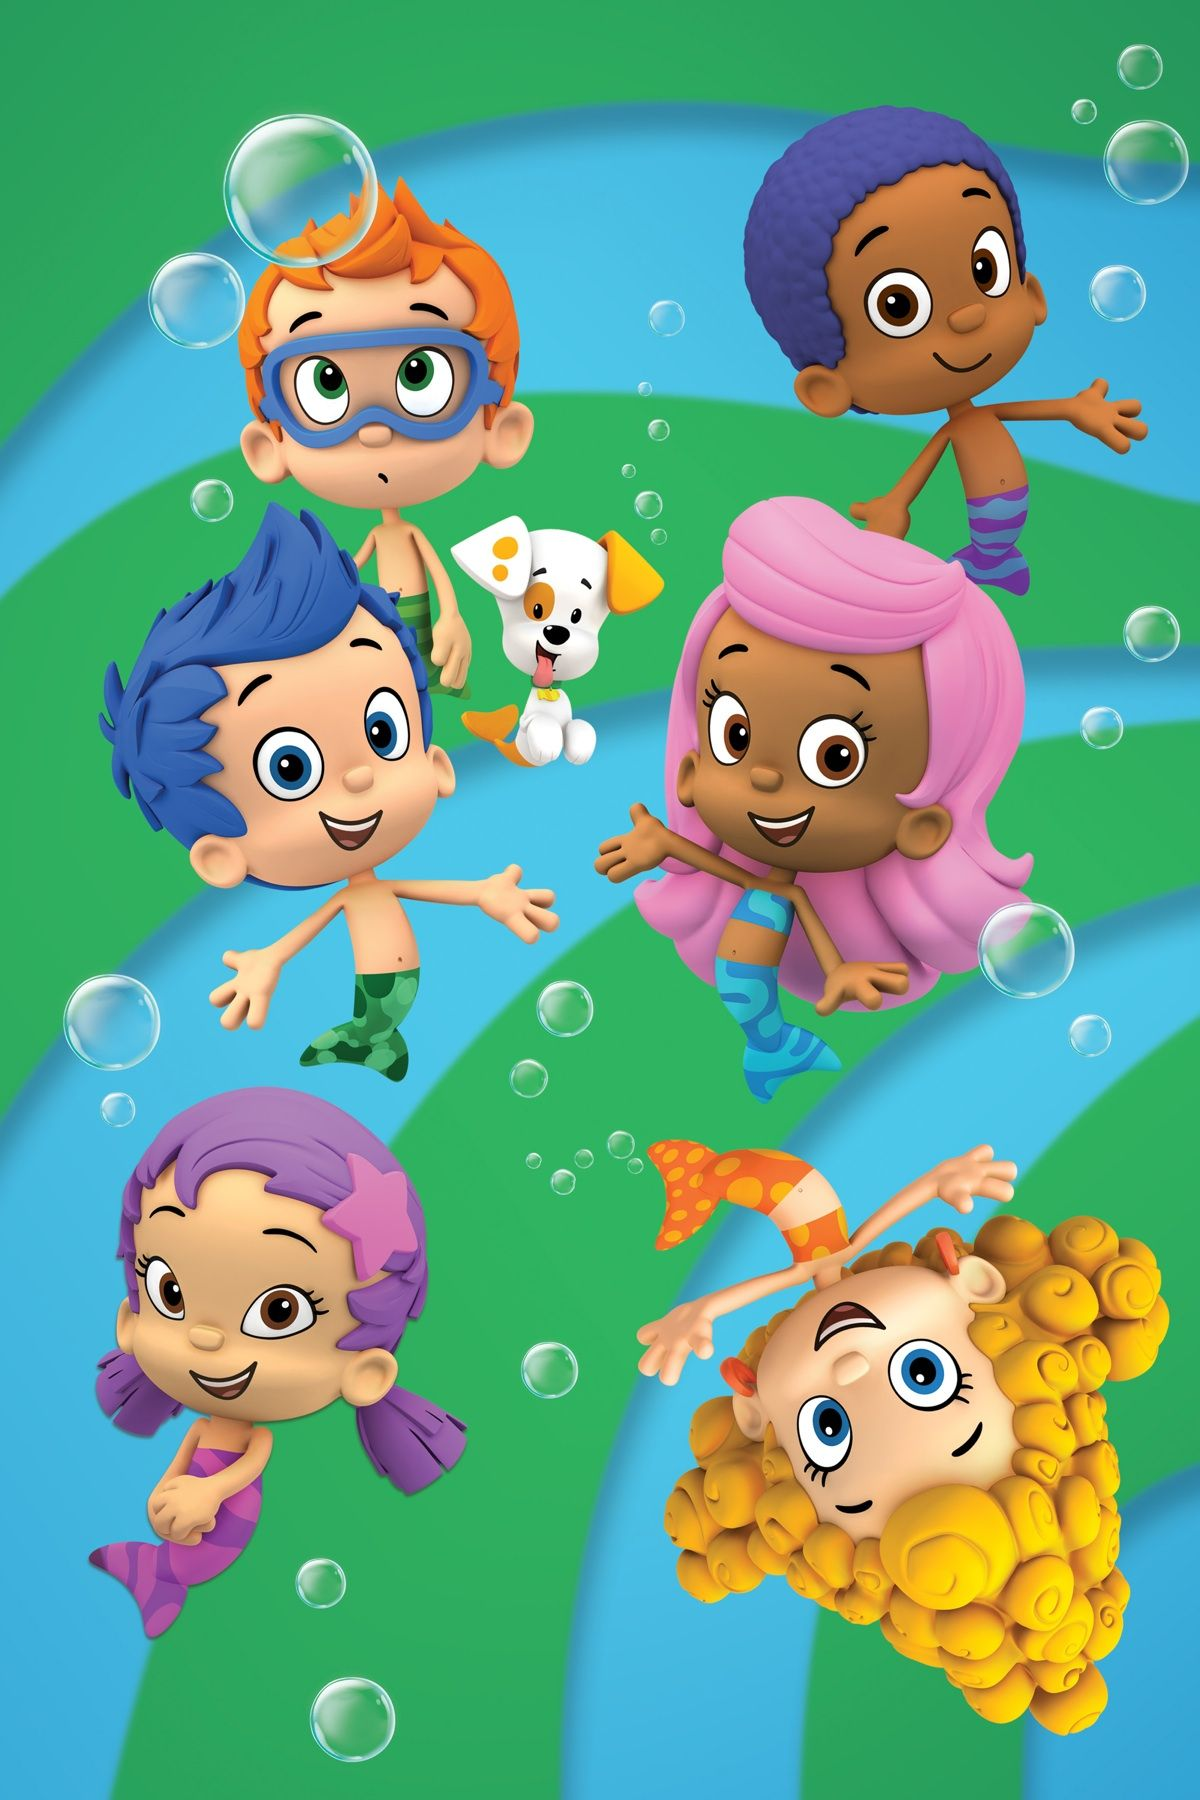 Bubble Guppies serie animada creada por Jonny Belt y Robert Scull ...